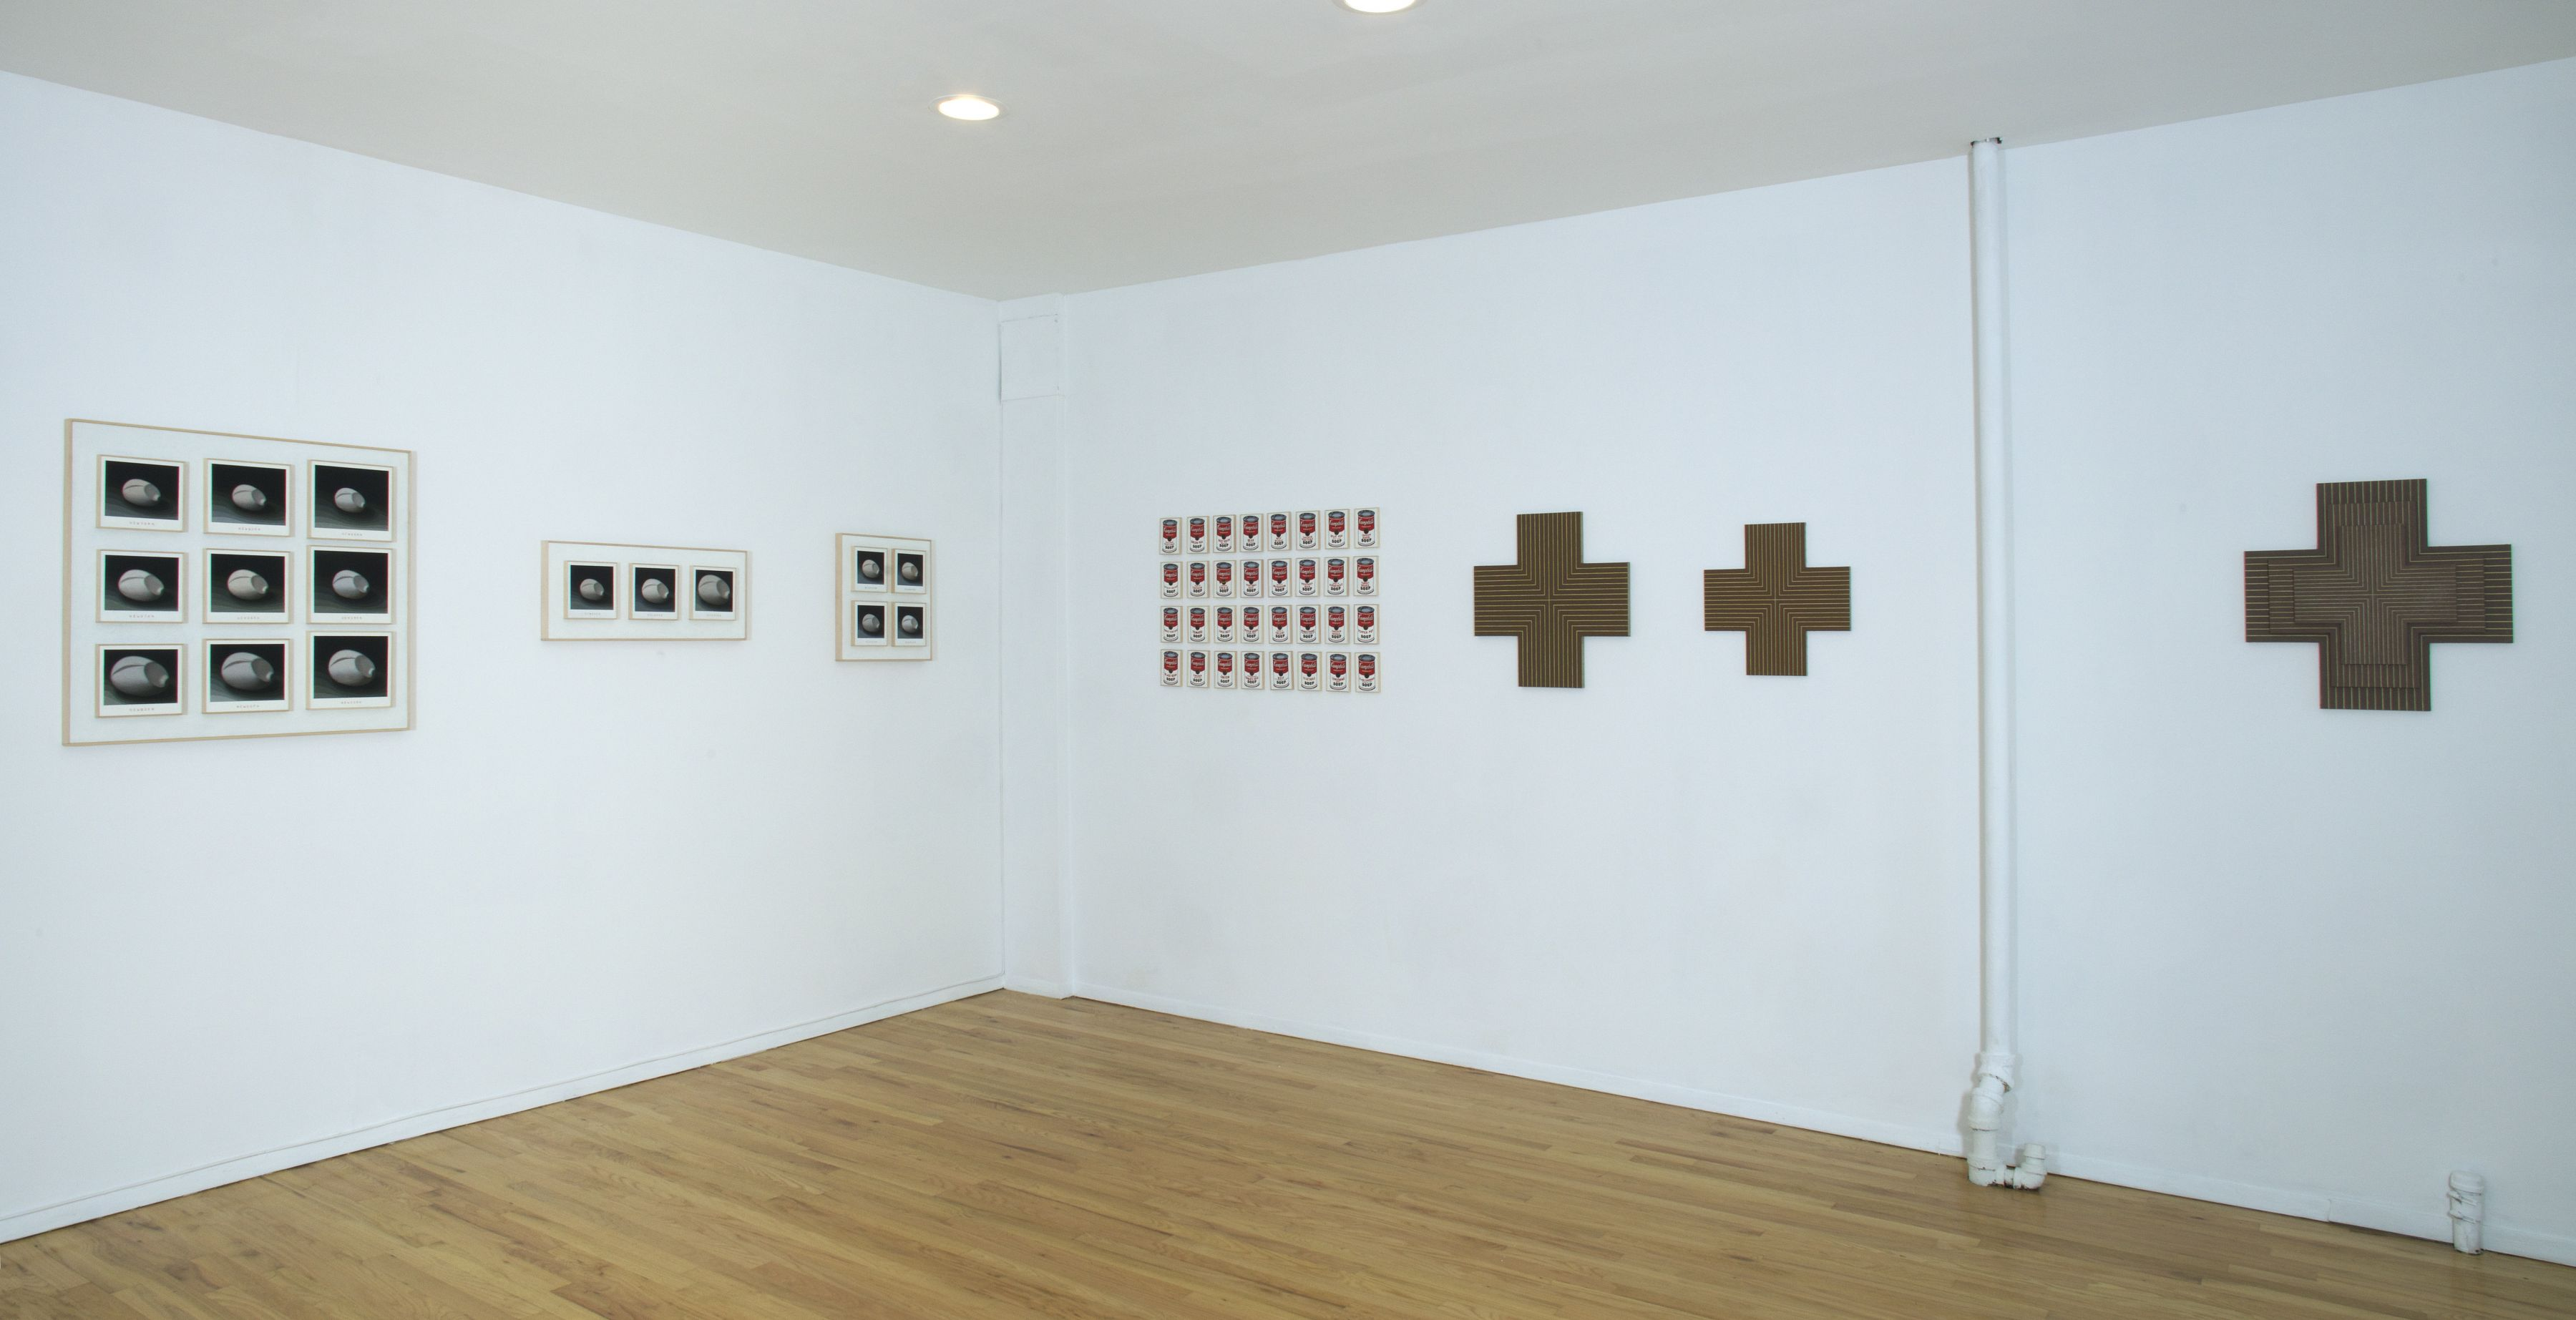 Installation view, Richard Pettibone: 64 Paintings, 9 Works, 1046 MADISON